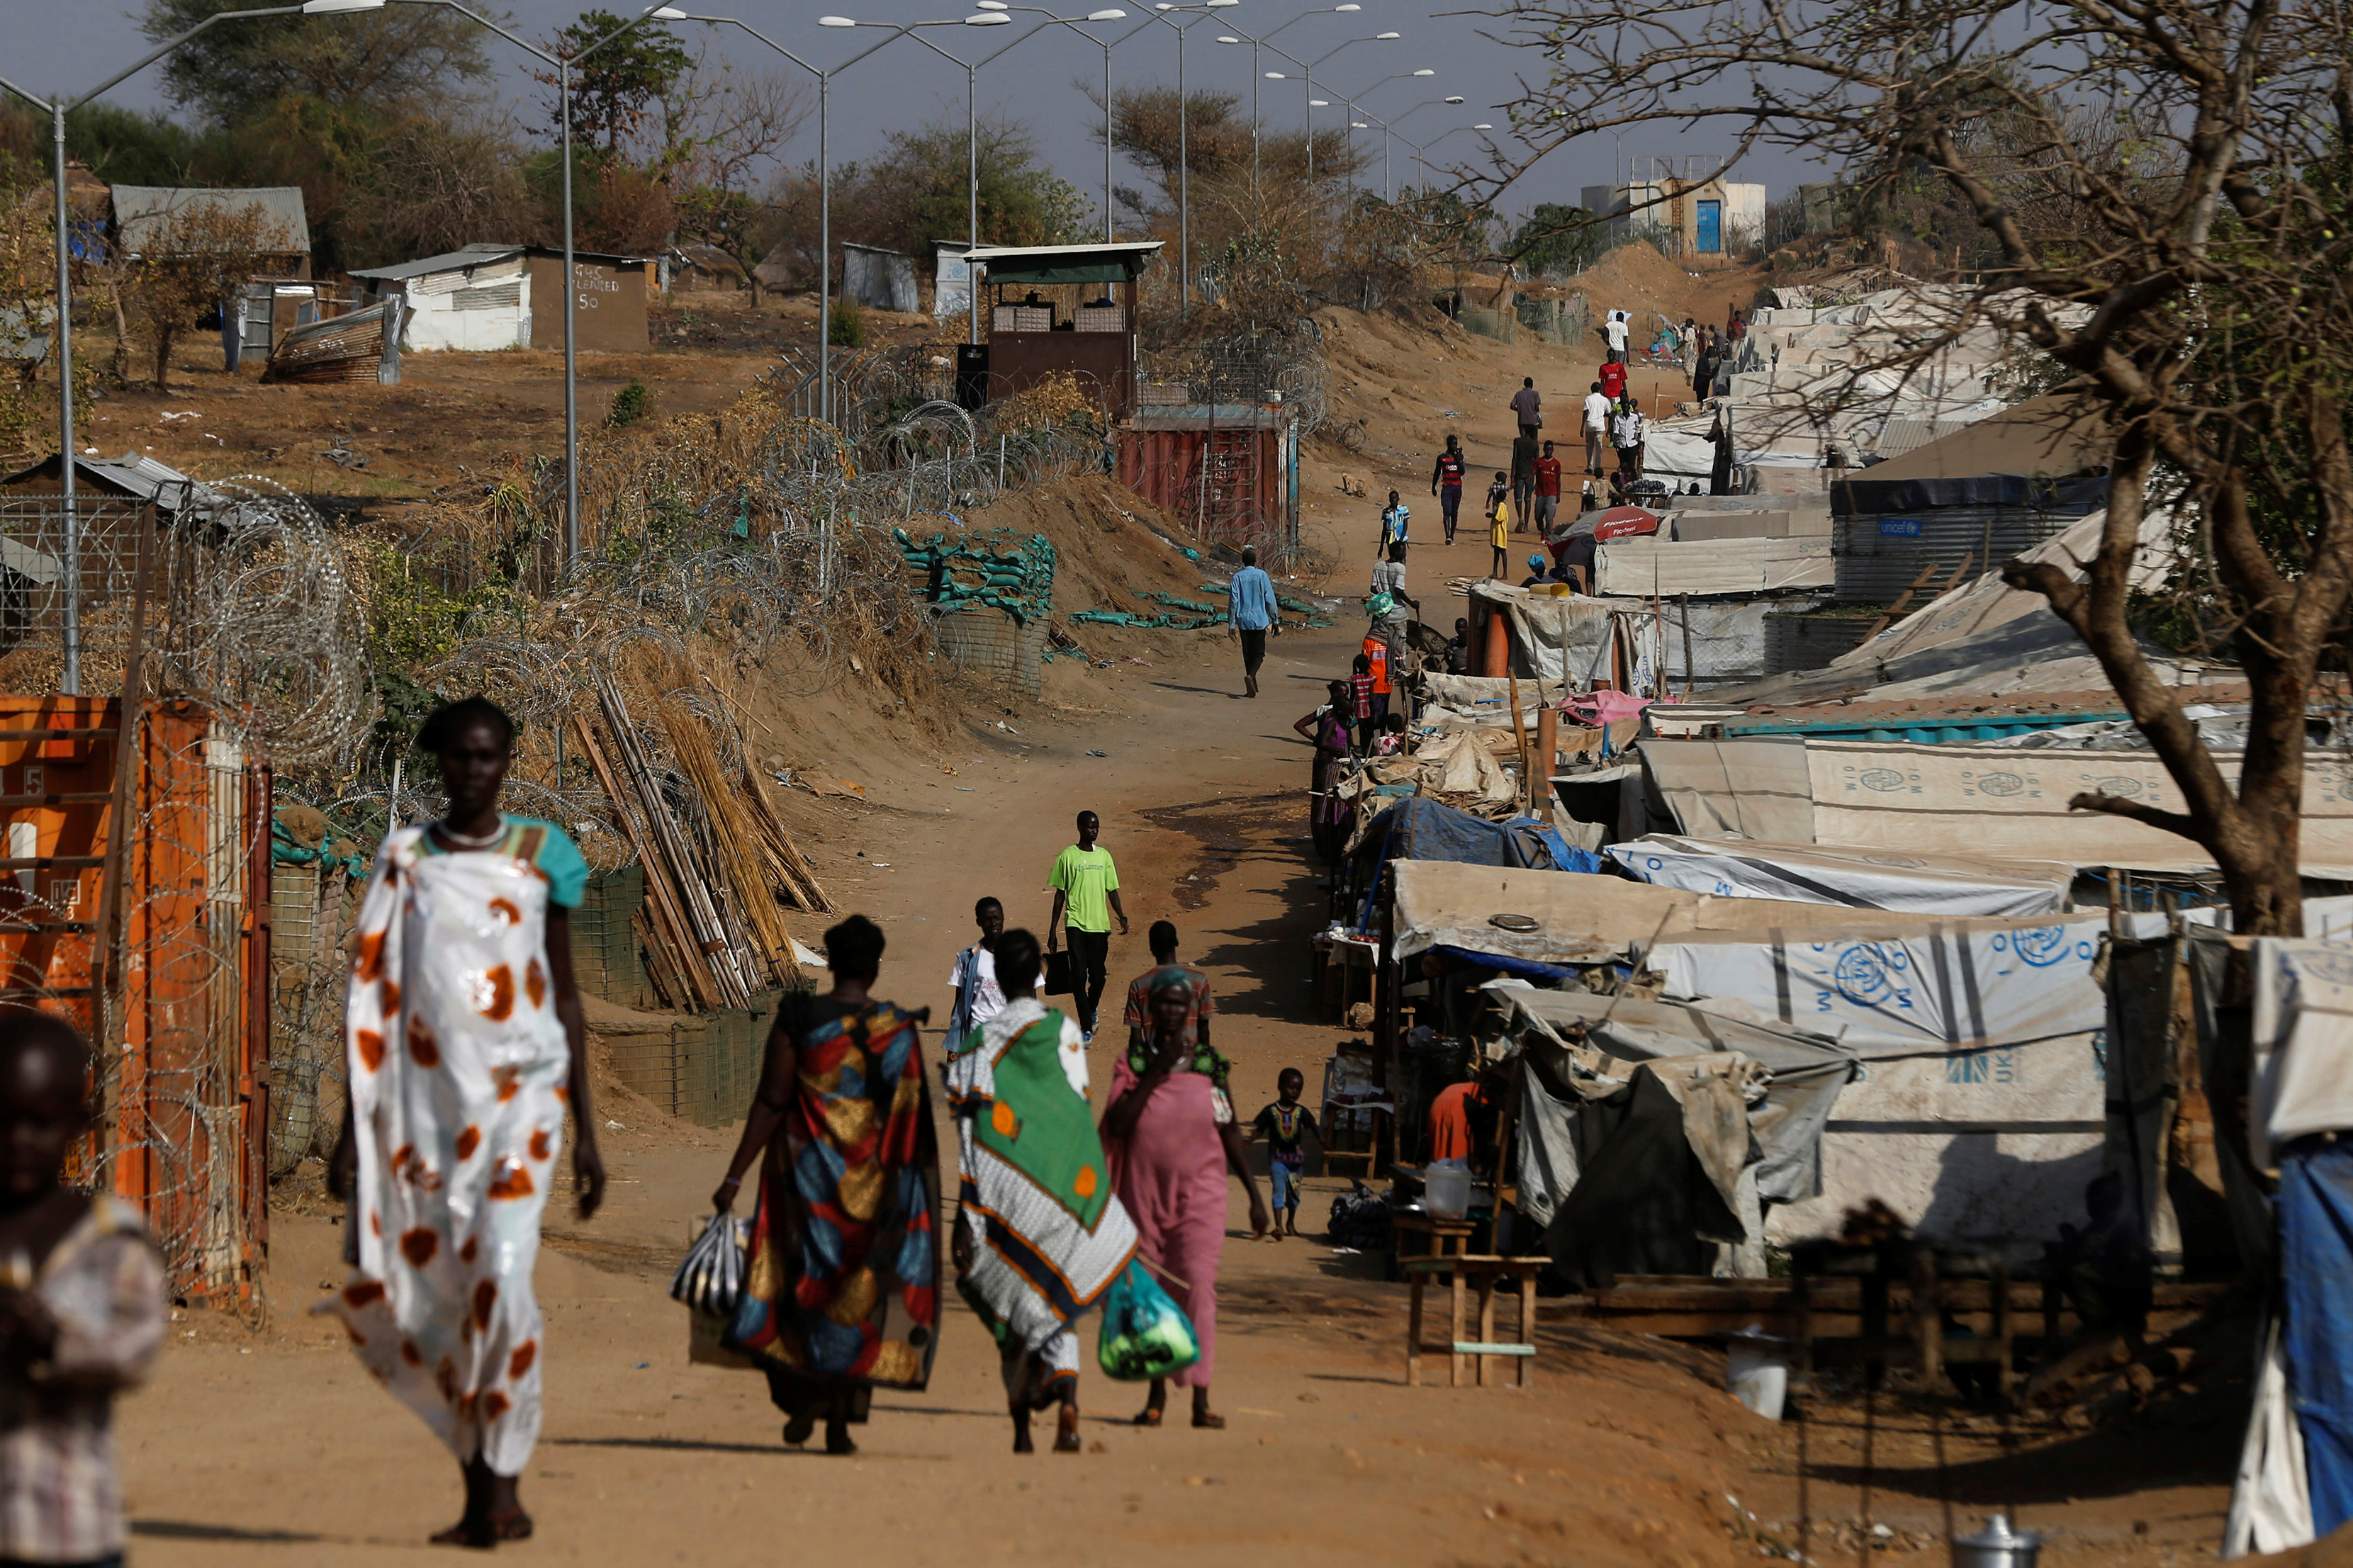 A U.N.-run camp outside South Sudan's capital Juba houses those who have fled the violence between government and opposition forces. Photo by Siegfried Modola/Reuters